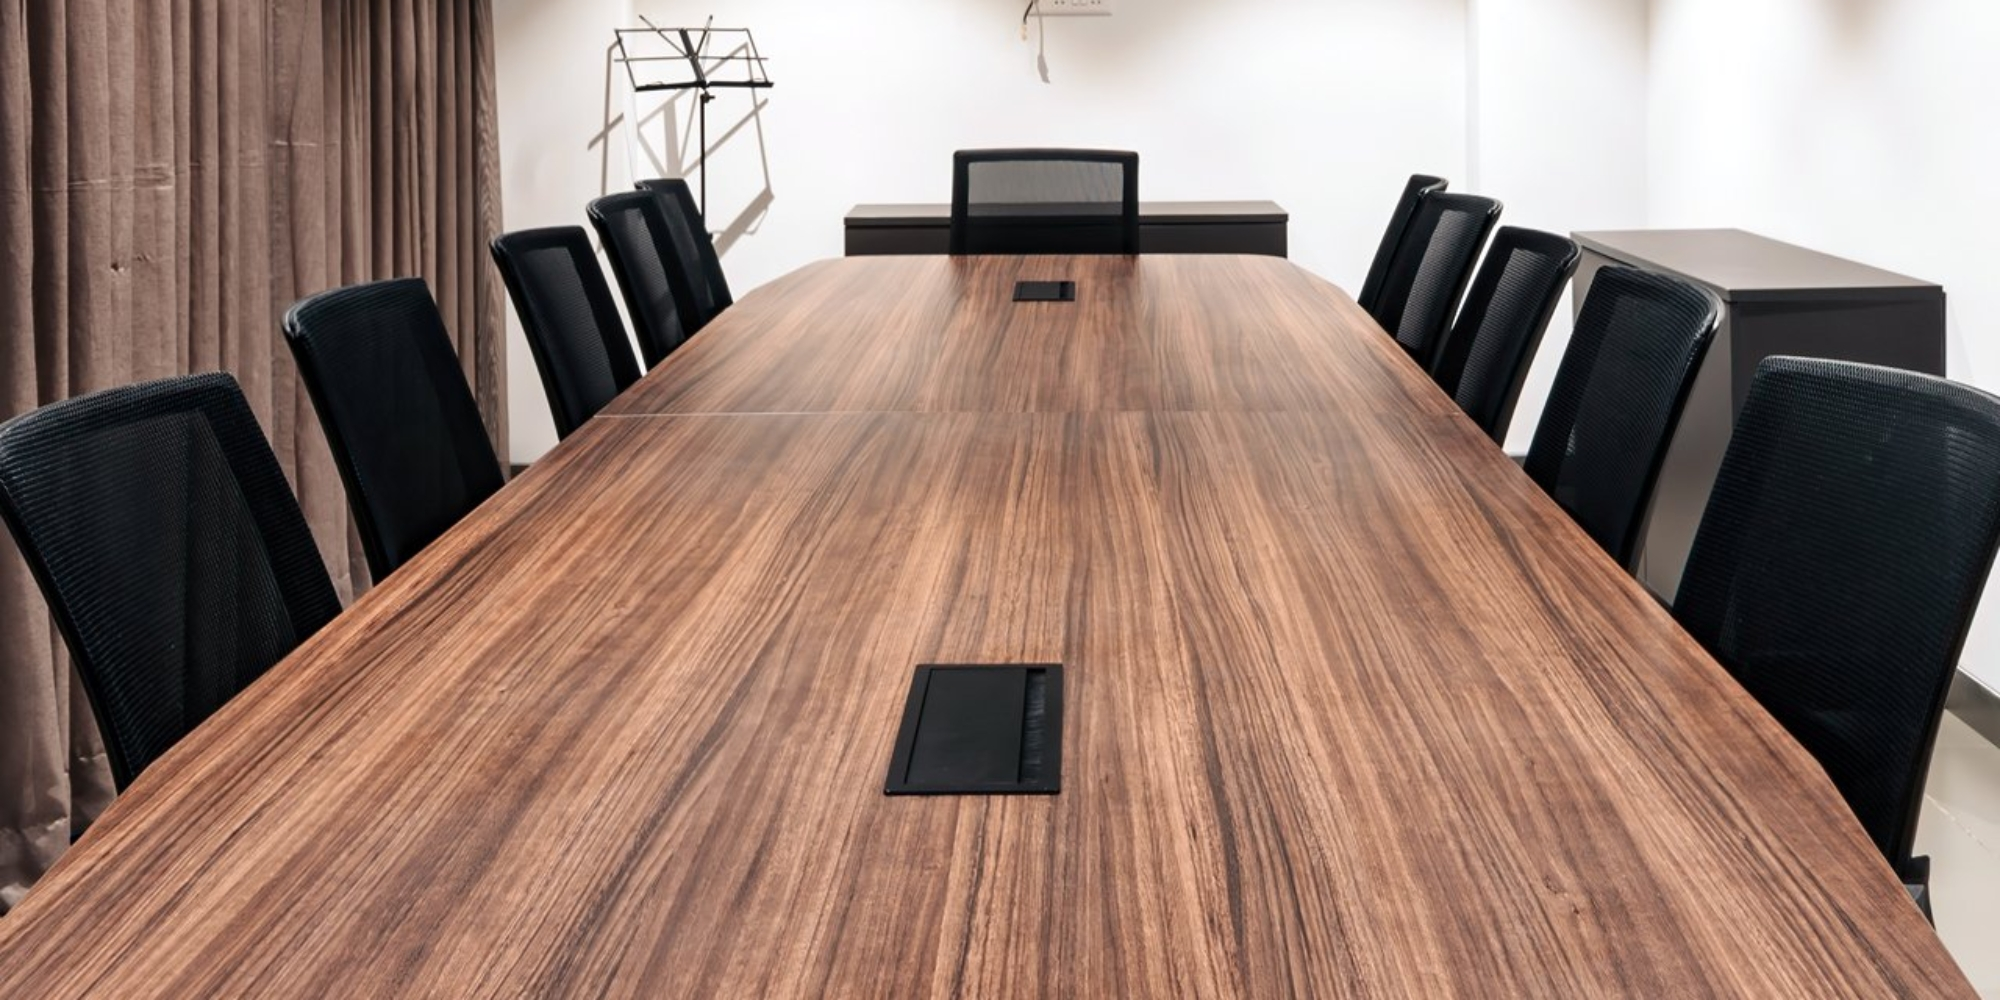 conference-room-00